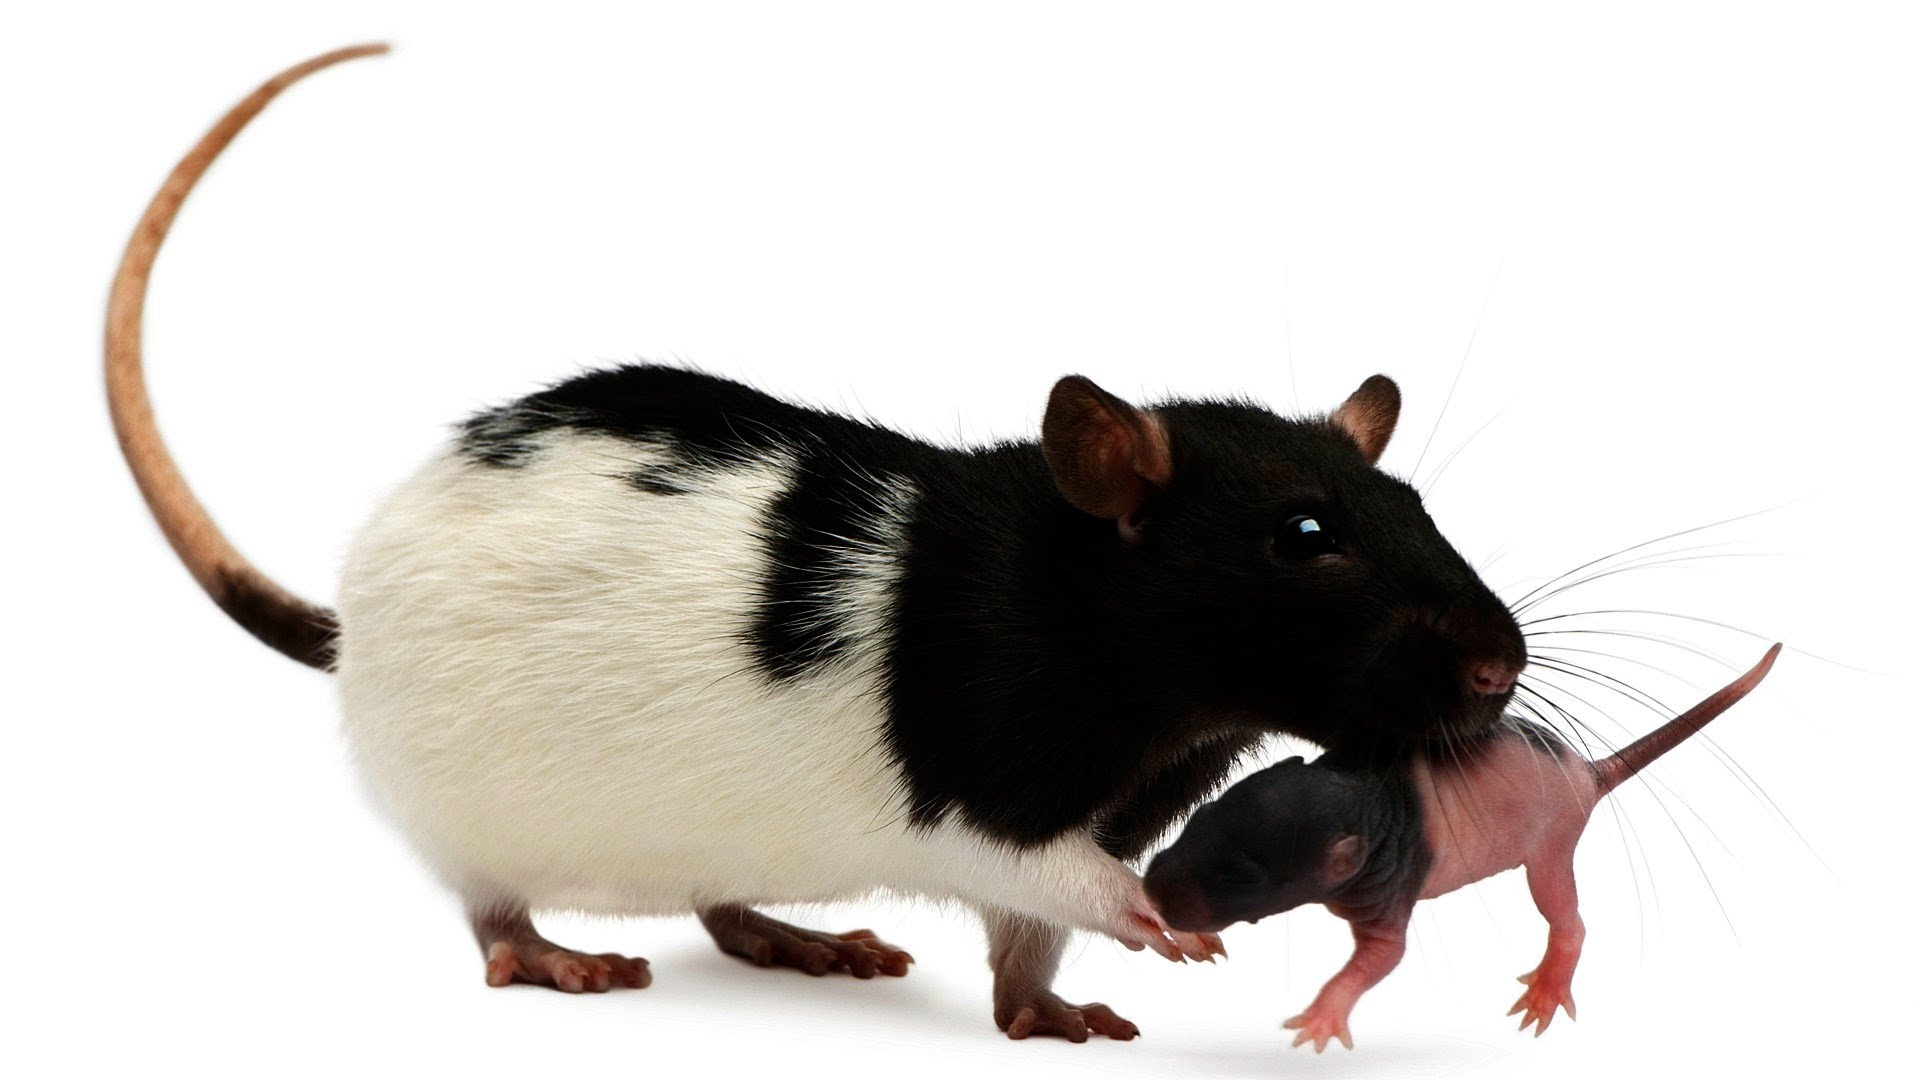 Rat High Quality Wallpapers